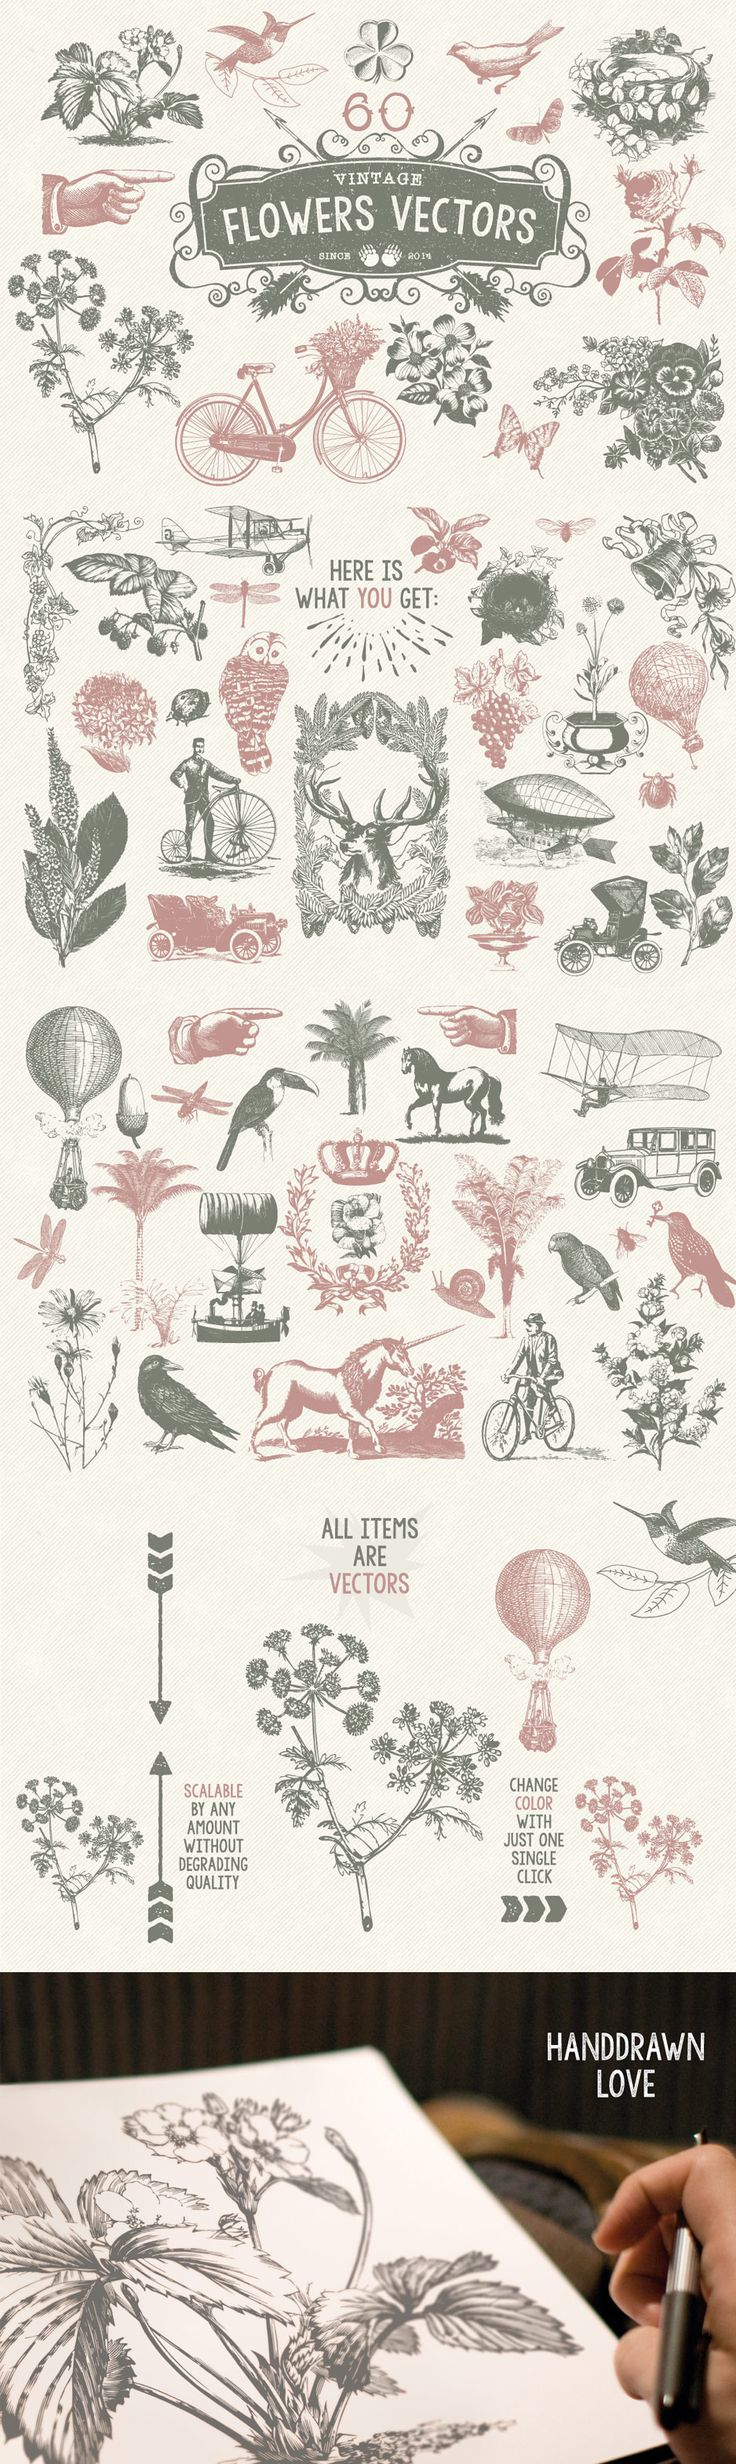 60 Vintage Flower Vectors by MouseMade | The Comprehensive, Creative Vectors Bundle Mar 2015 from Design Cuts